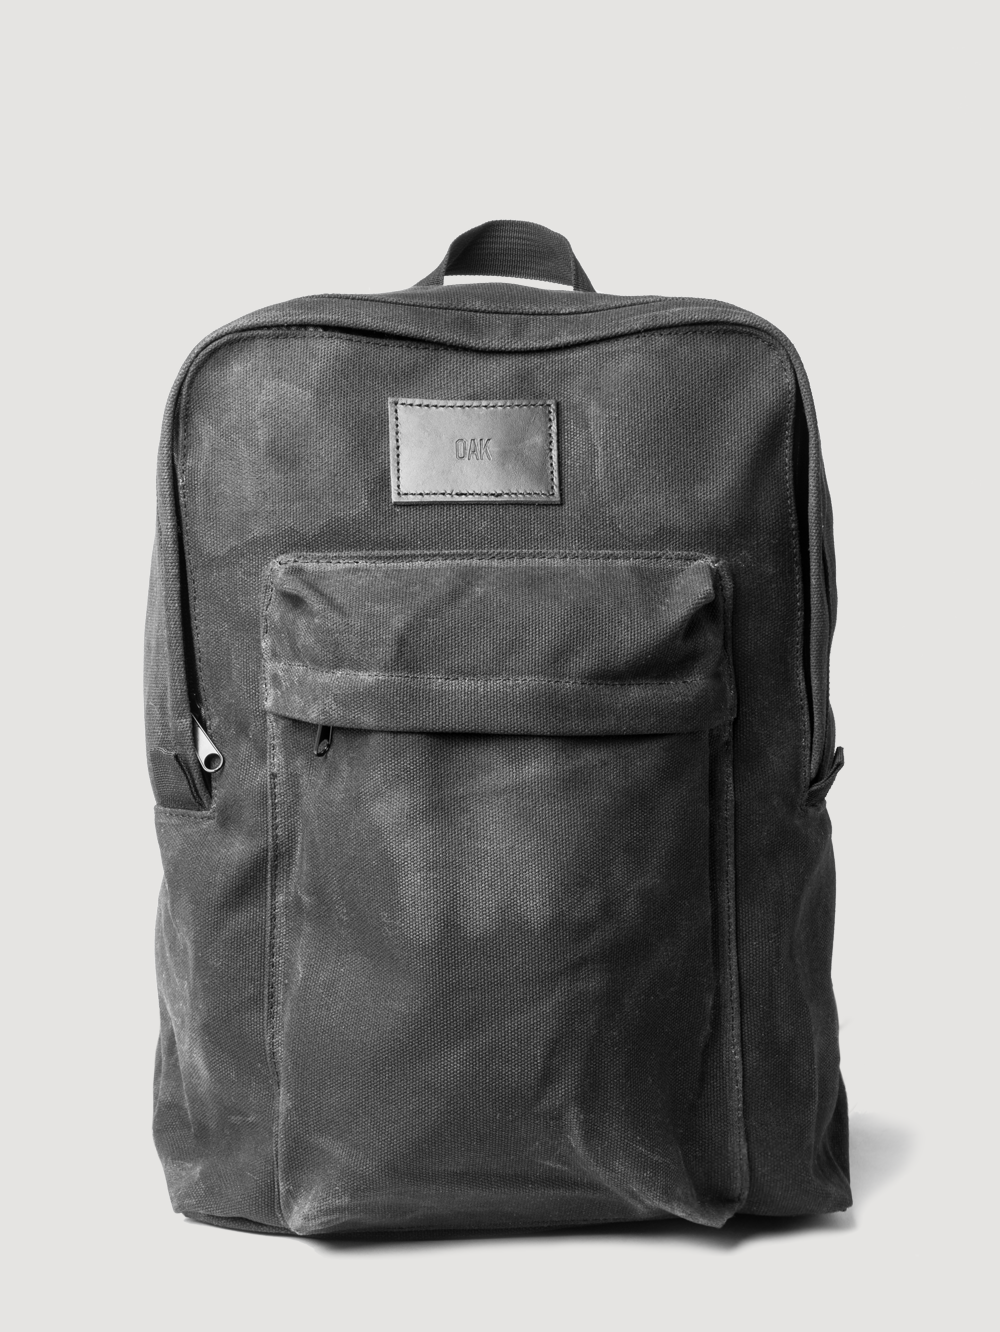 Oak Dekalb Backpack